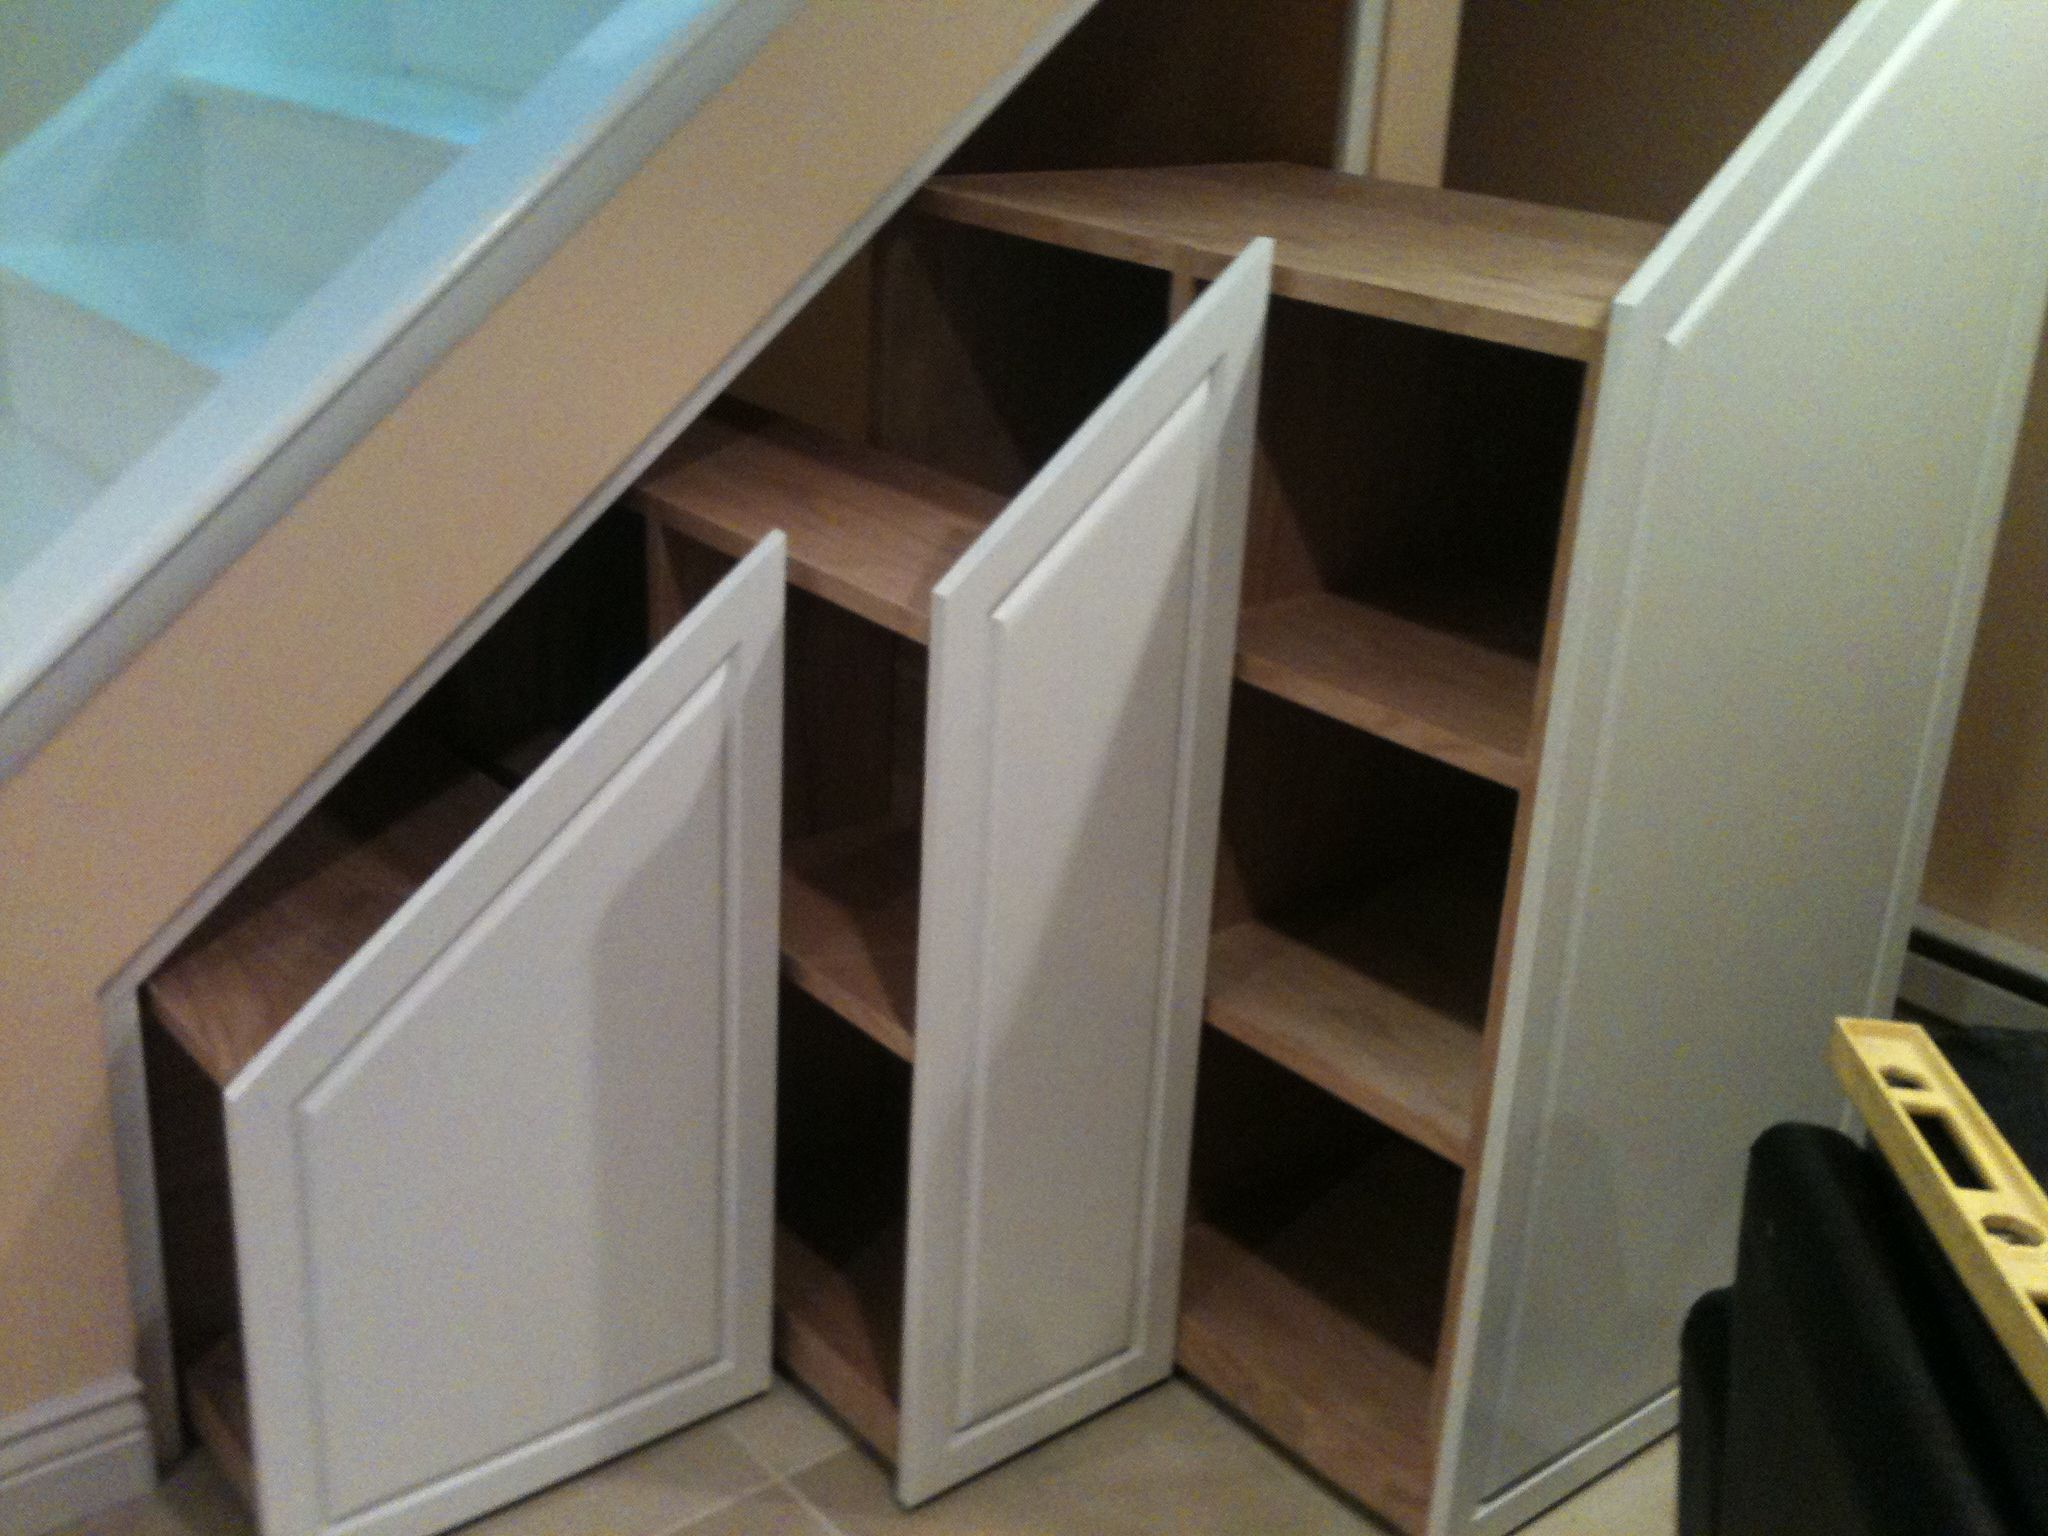 Images of storage under stairs for more wood products for Under the stairs cabinet